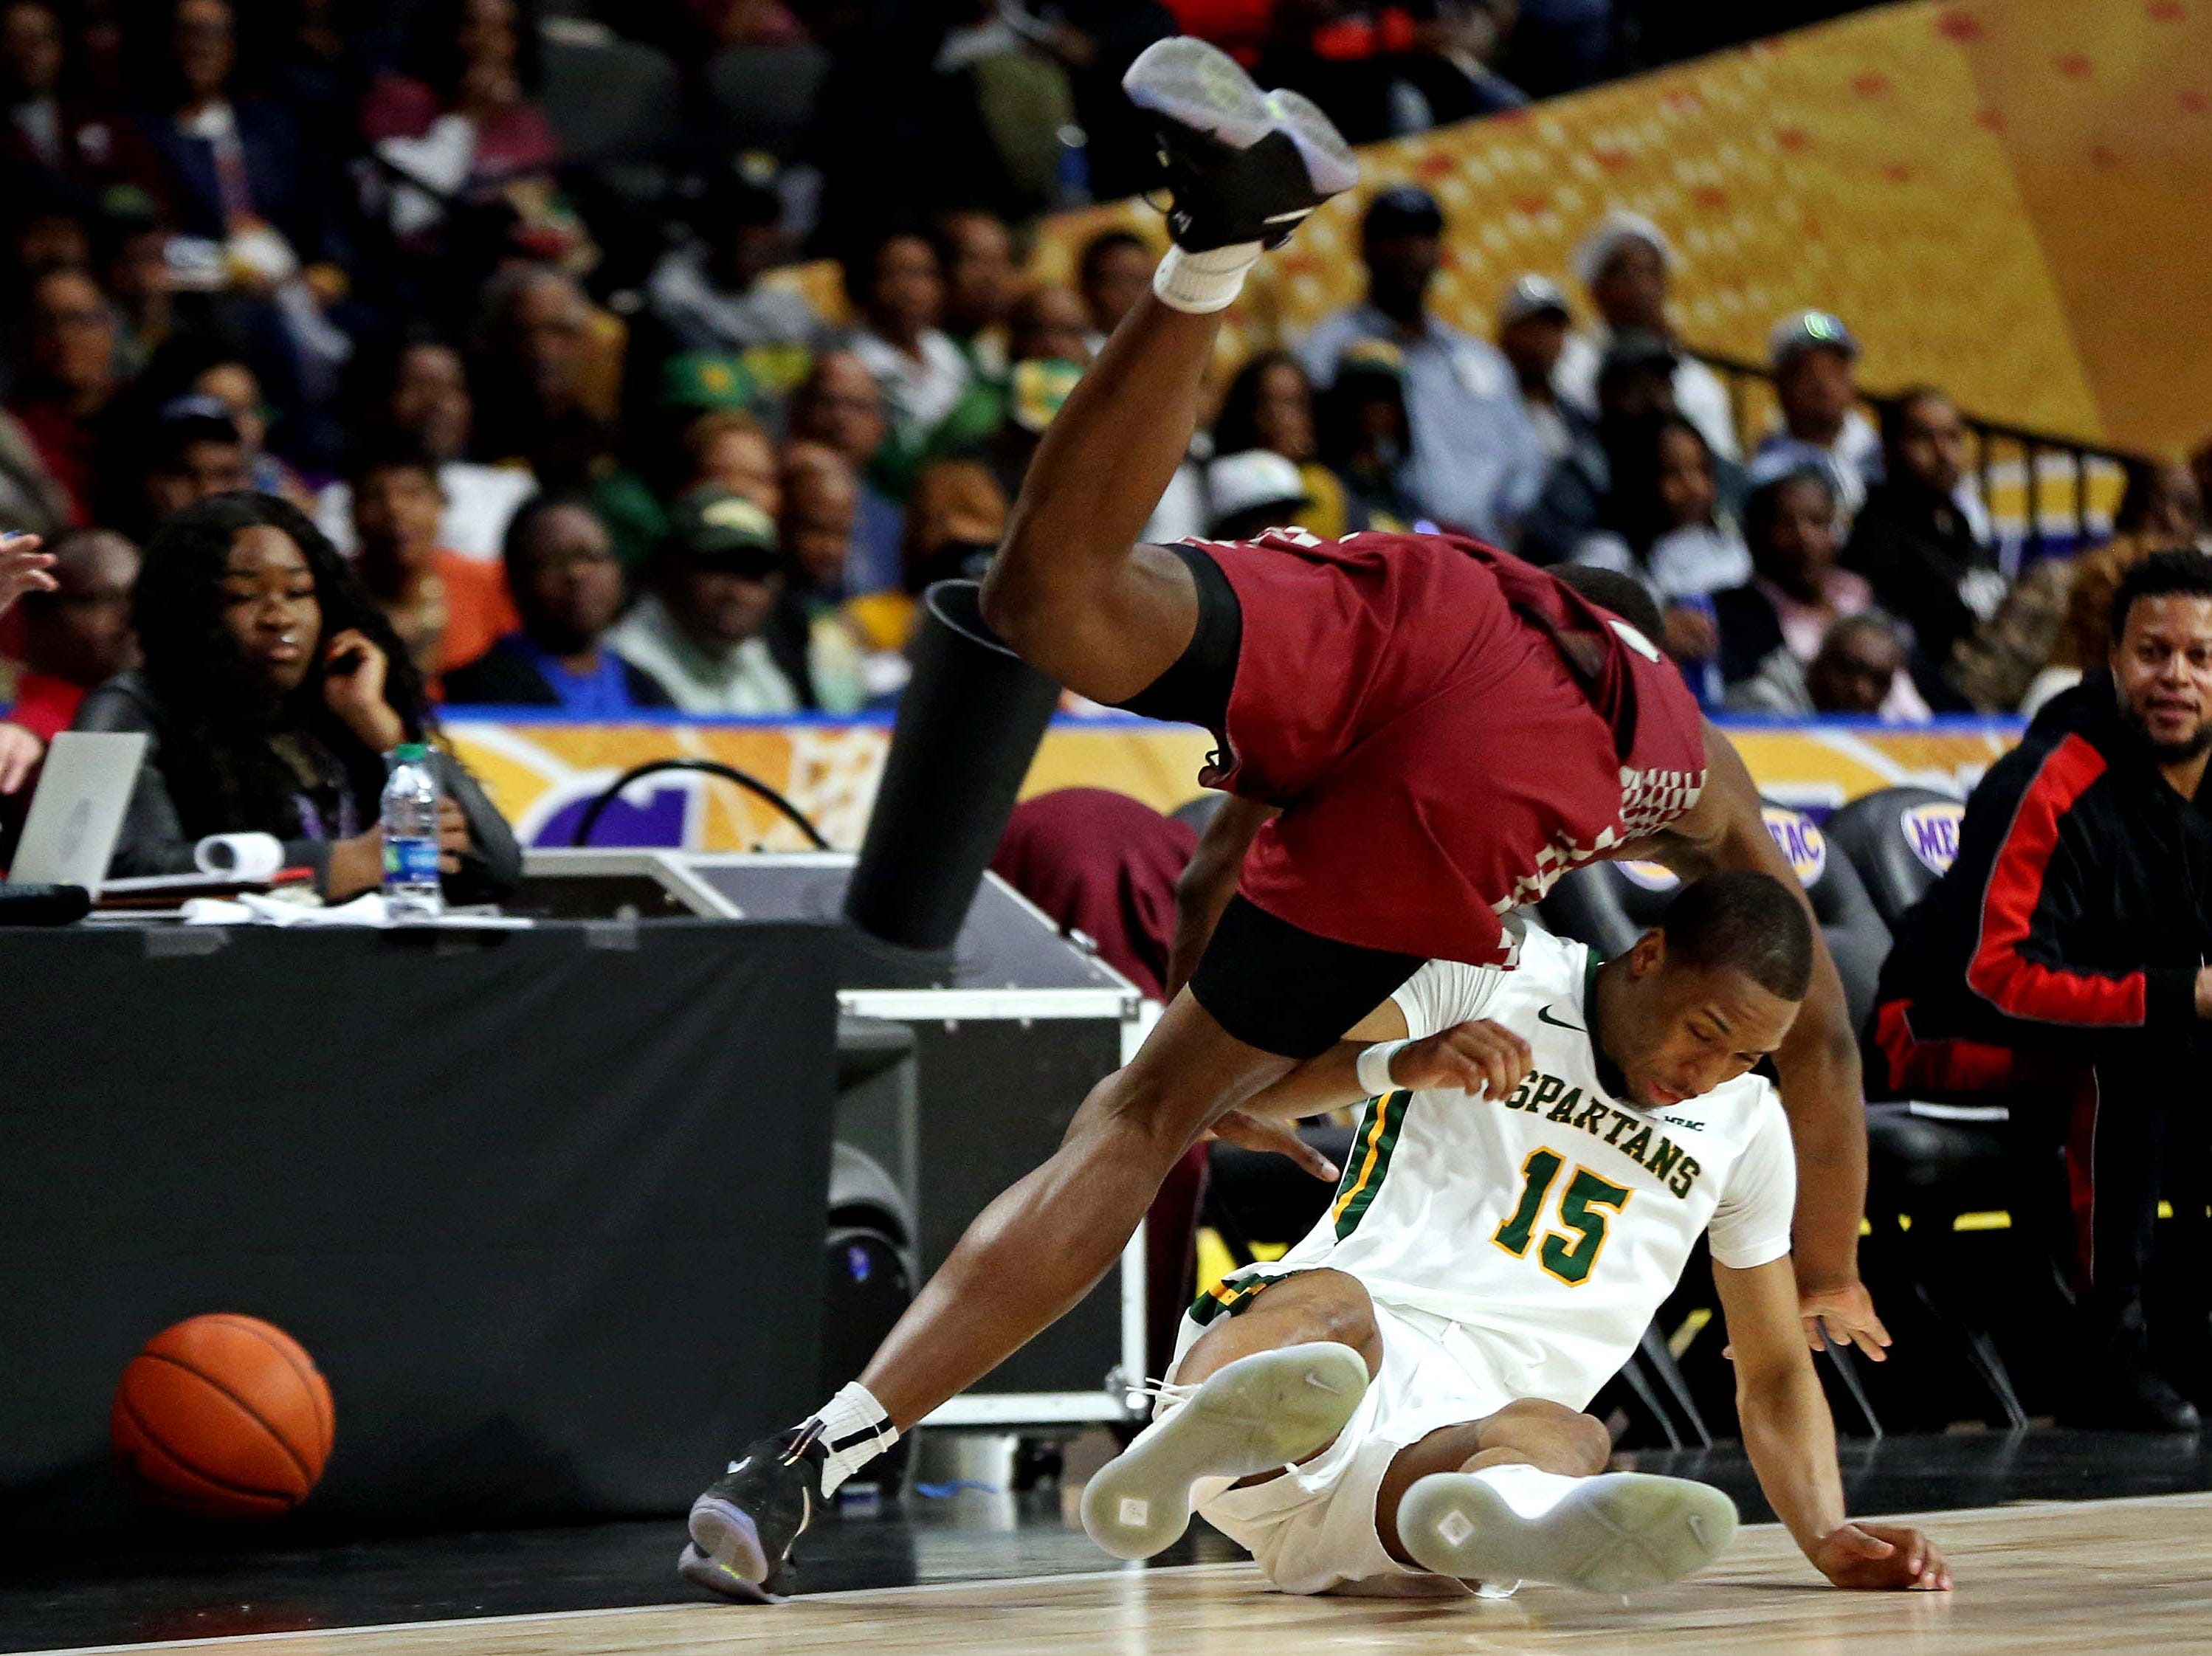 March 16: North Carolina Central Eagles center Raasean Davis (32) and Norfolk State Spartans guard C.J. Kelly (15) go for a loose ball during the second half in the MEAC tournament final.